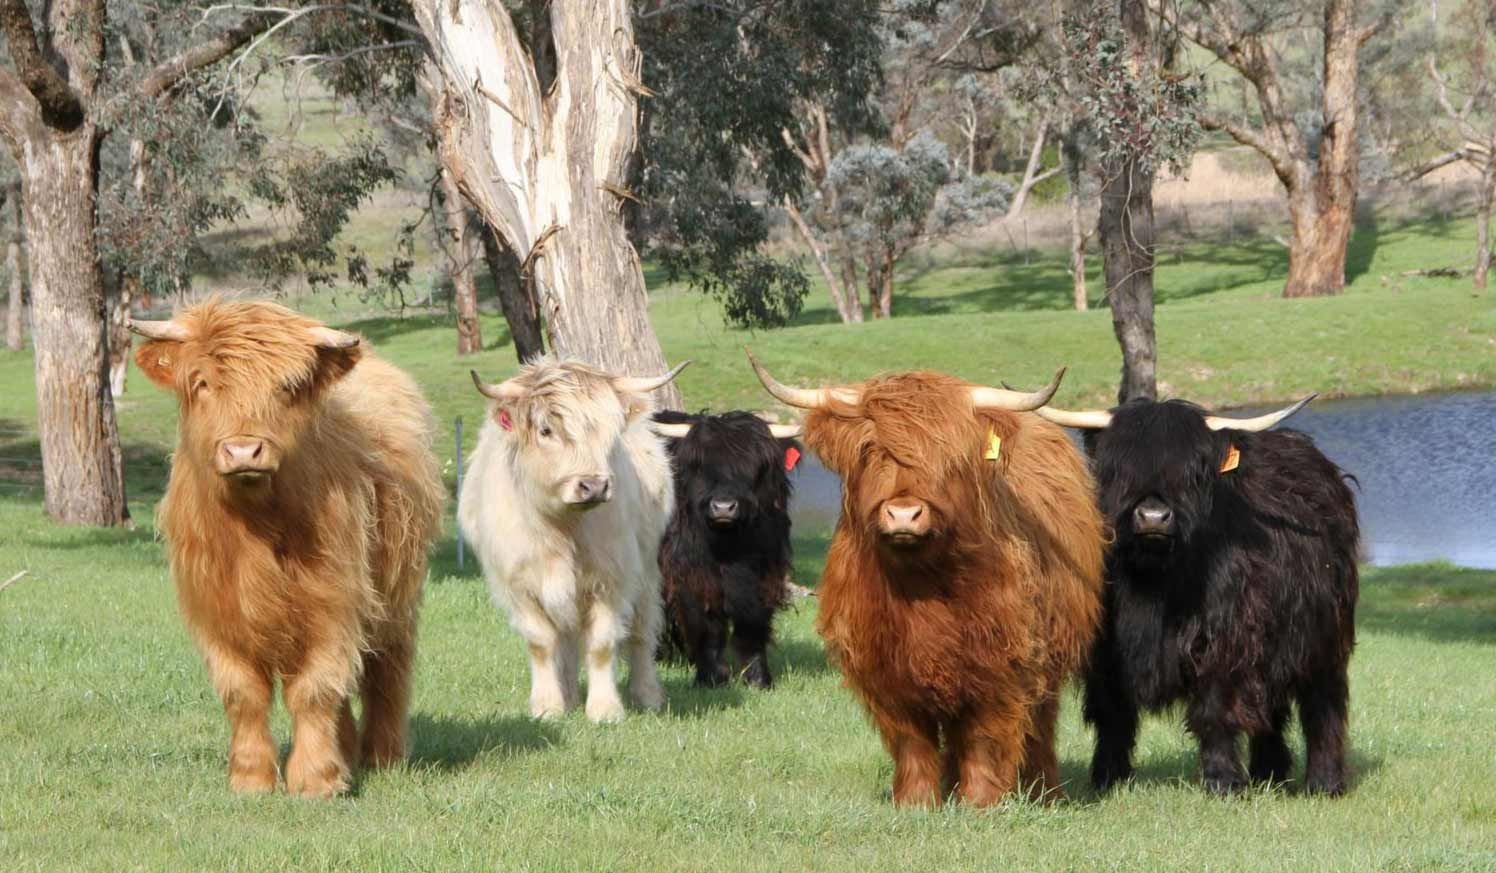 The Heilan Coo Did You Know Miniature Cow Breeds Mini Cows Highland Cattle